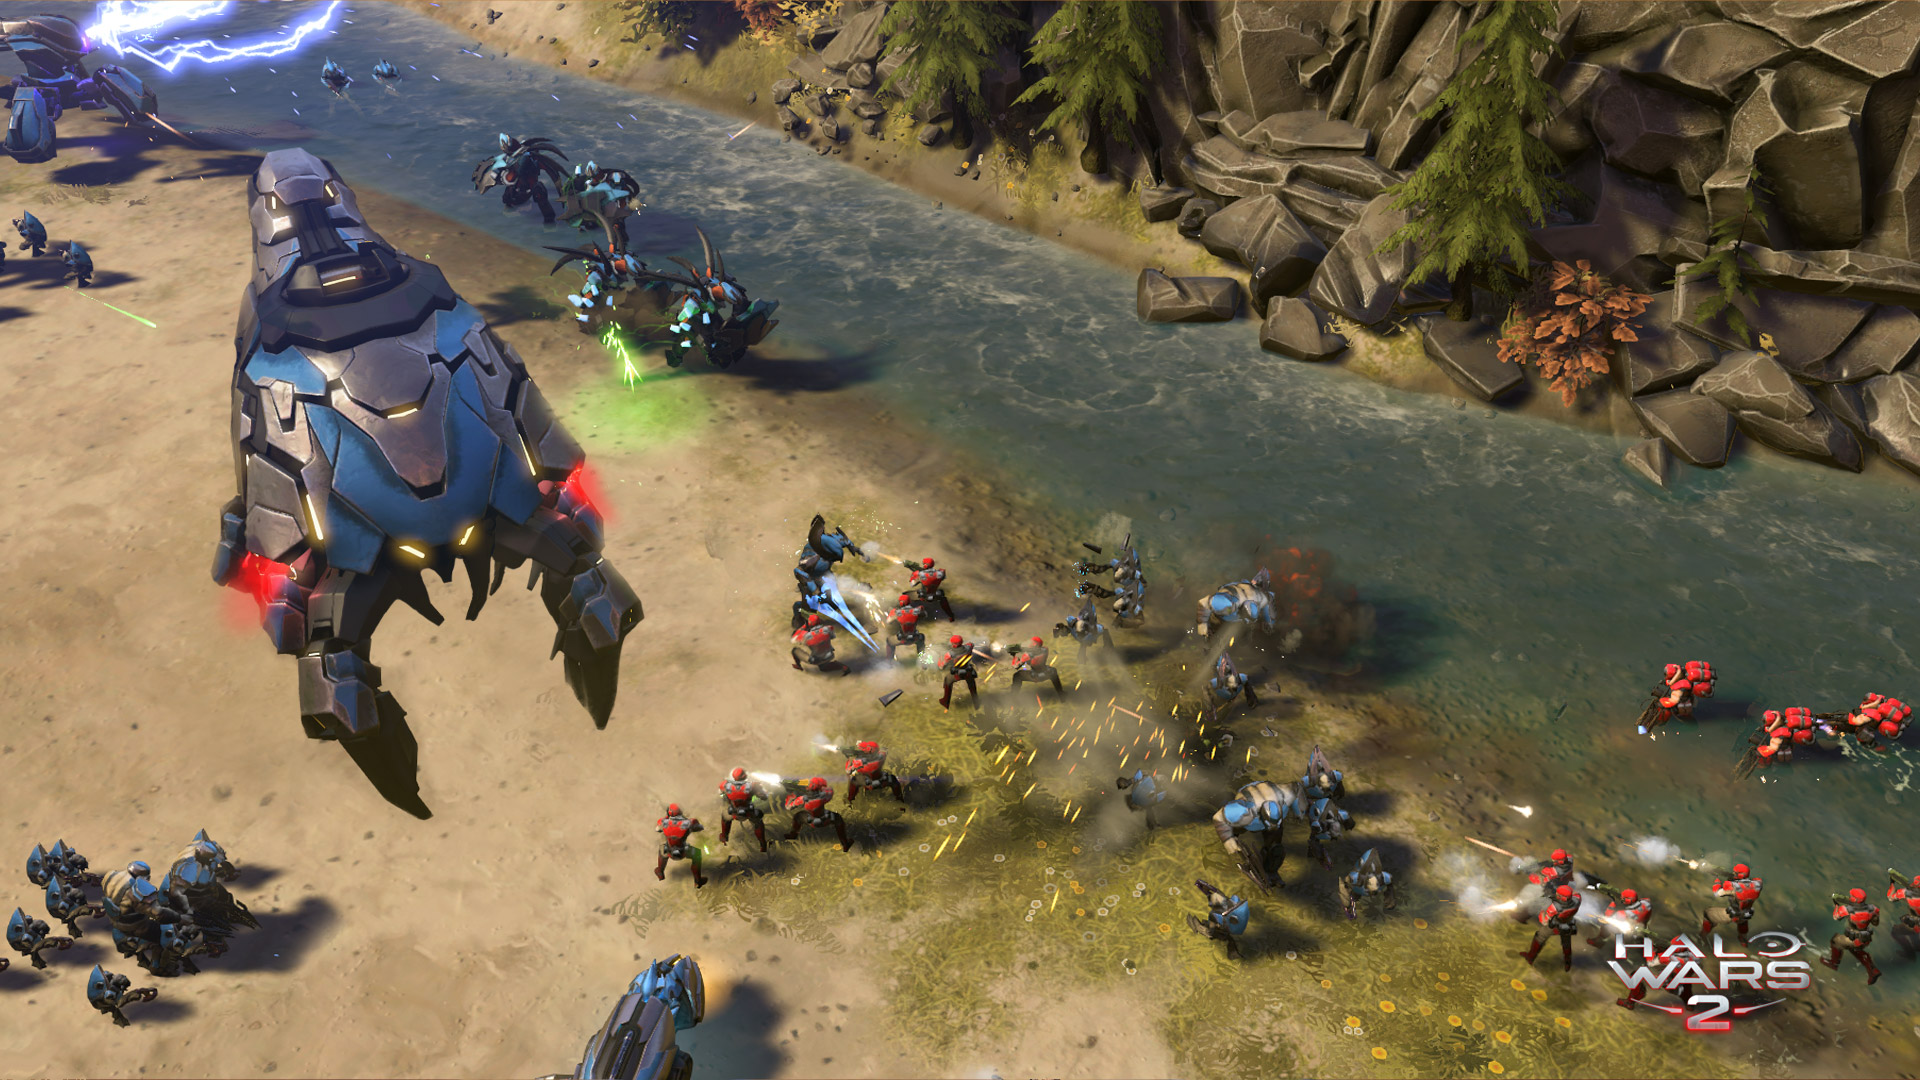 Interview: Major Nelson talks Halo Wars 2, E3 and Project Scorpio